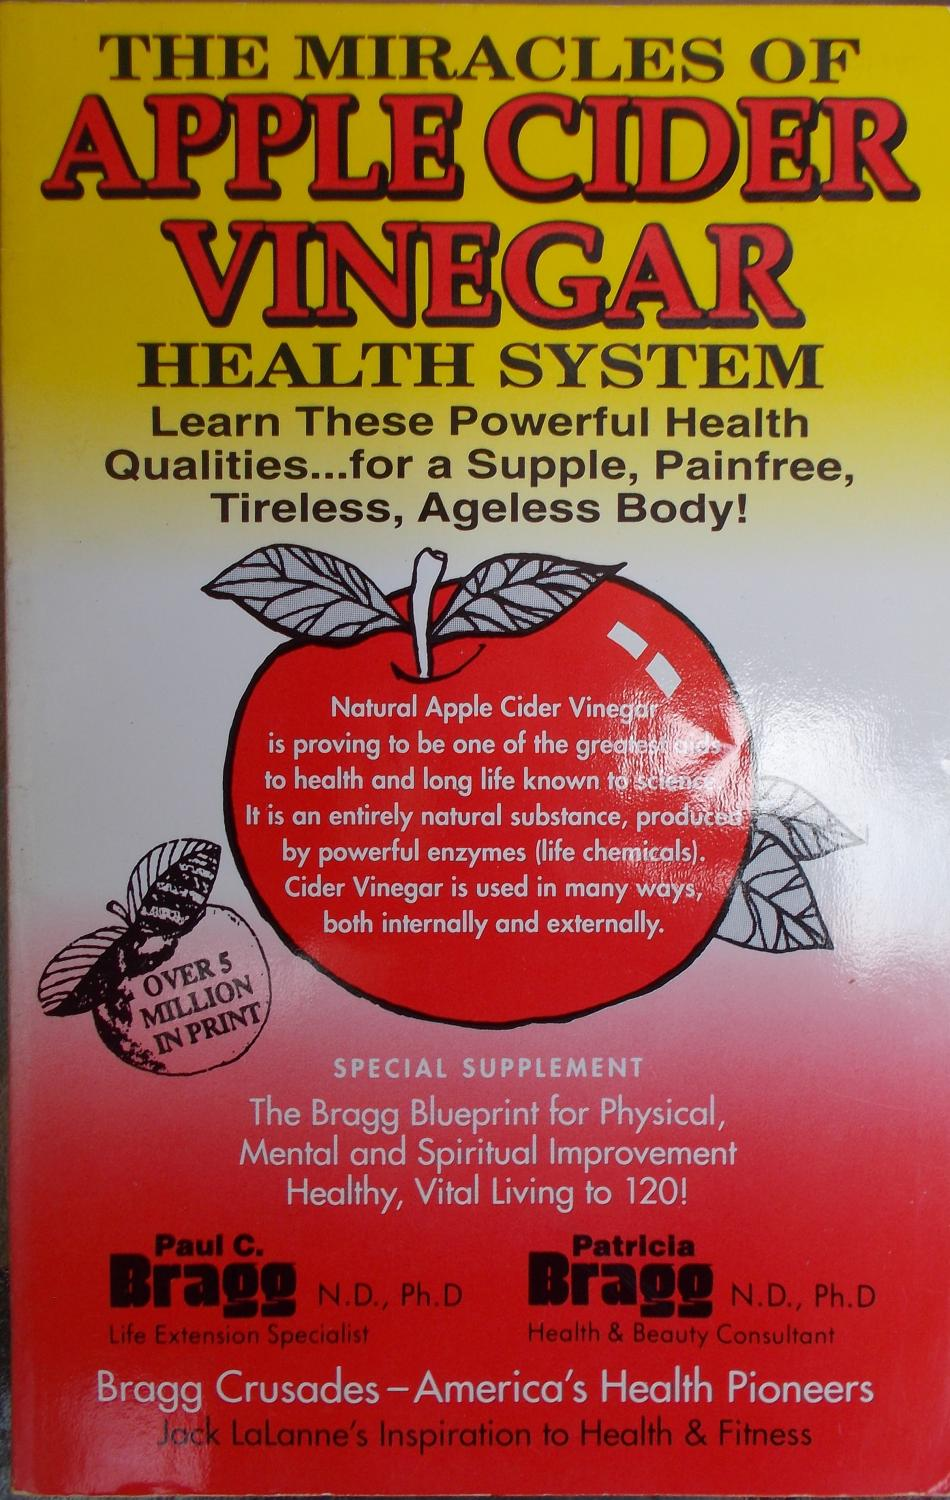 The miracles of apple cider vinegar health system by bragg paul c the miracles of apple cider vinegar health system bragg paul c and malvernweather Gallery